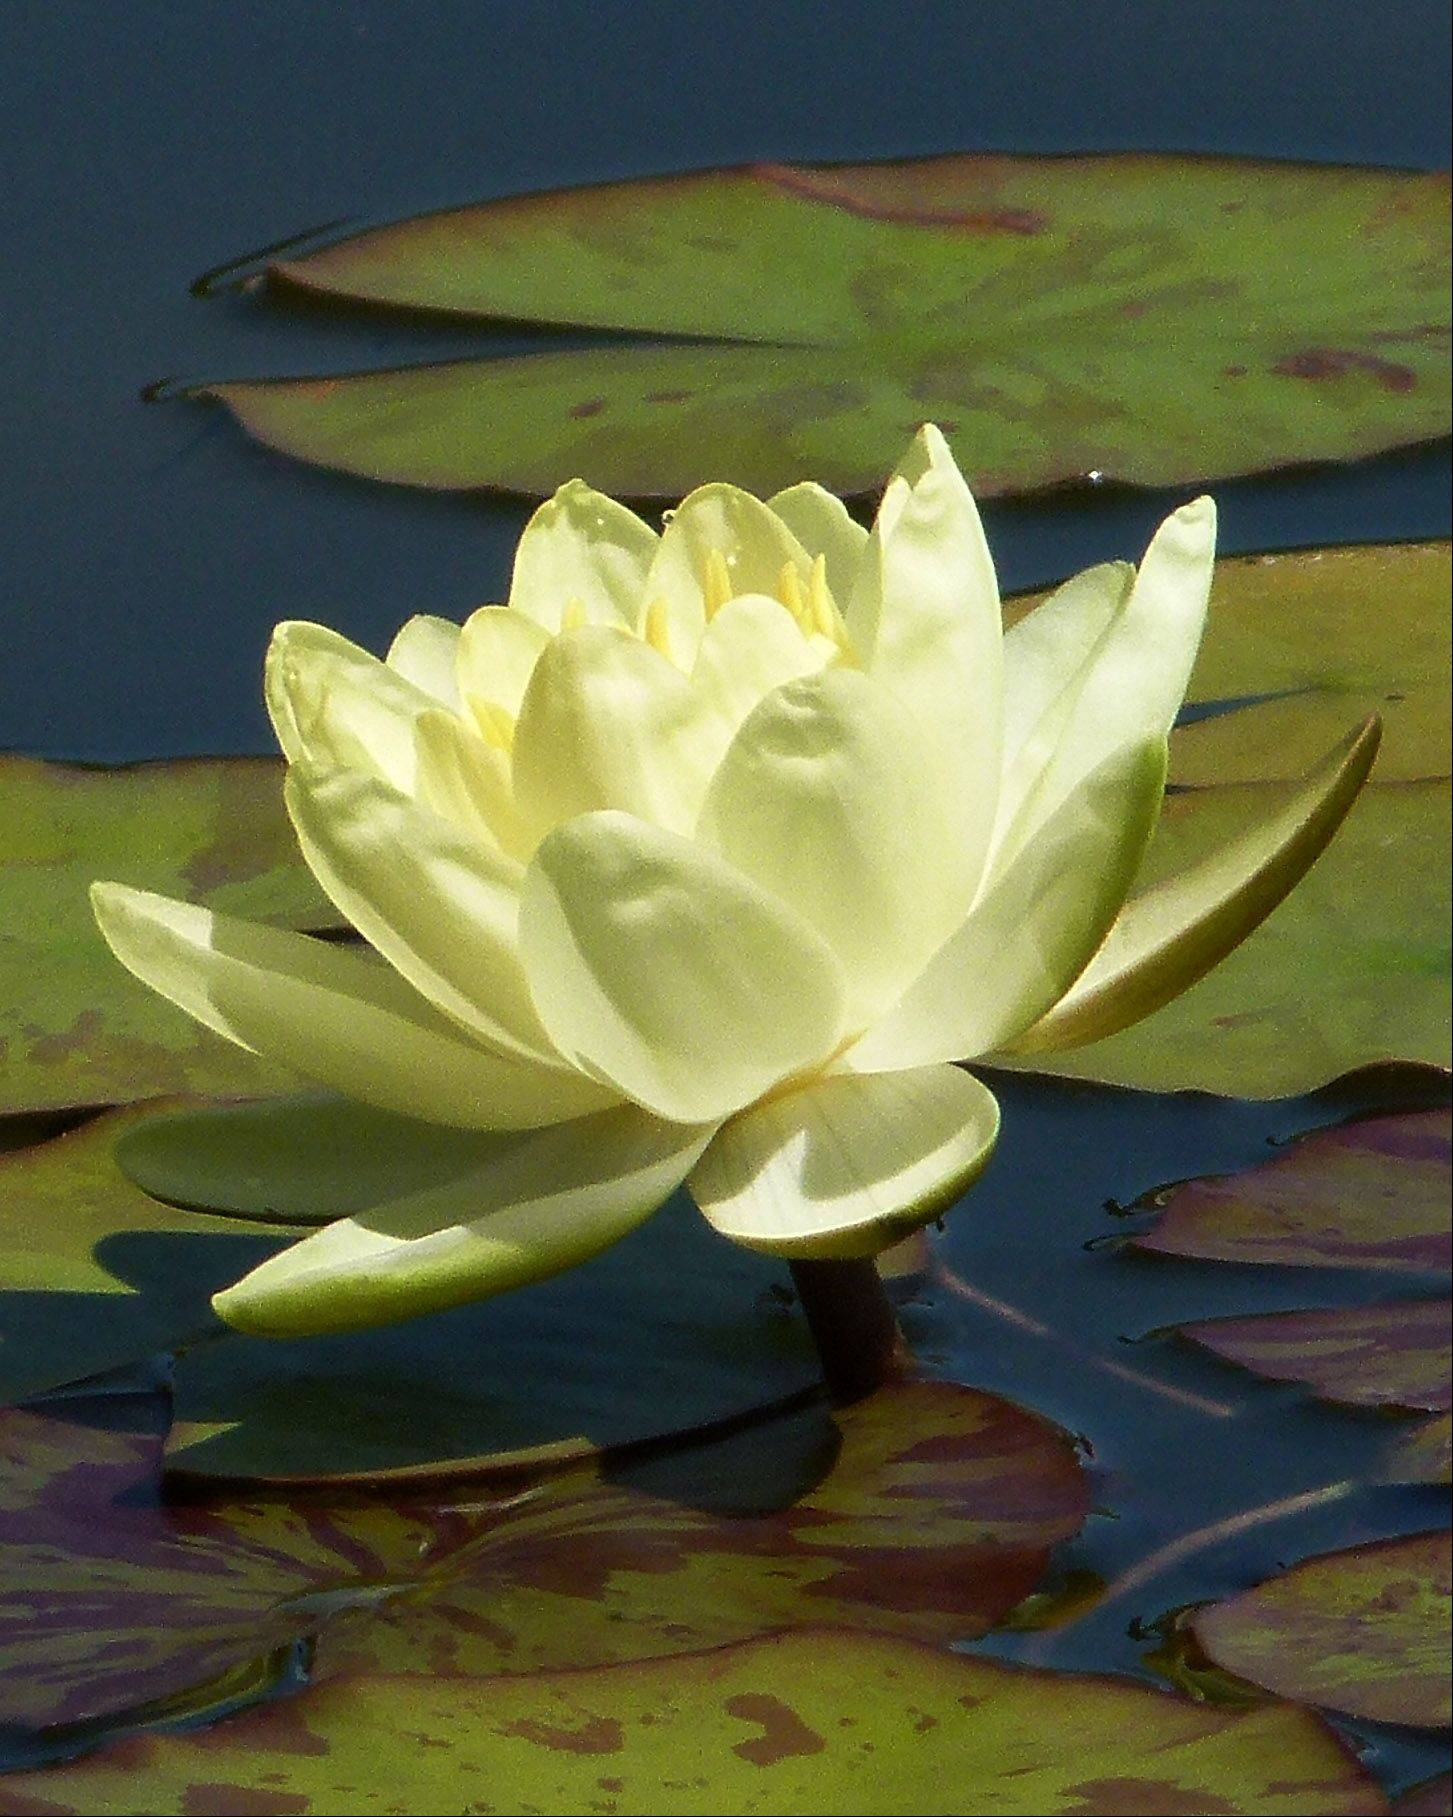 Here's a photo I took of a water lily.